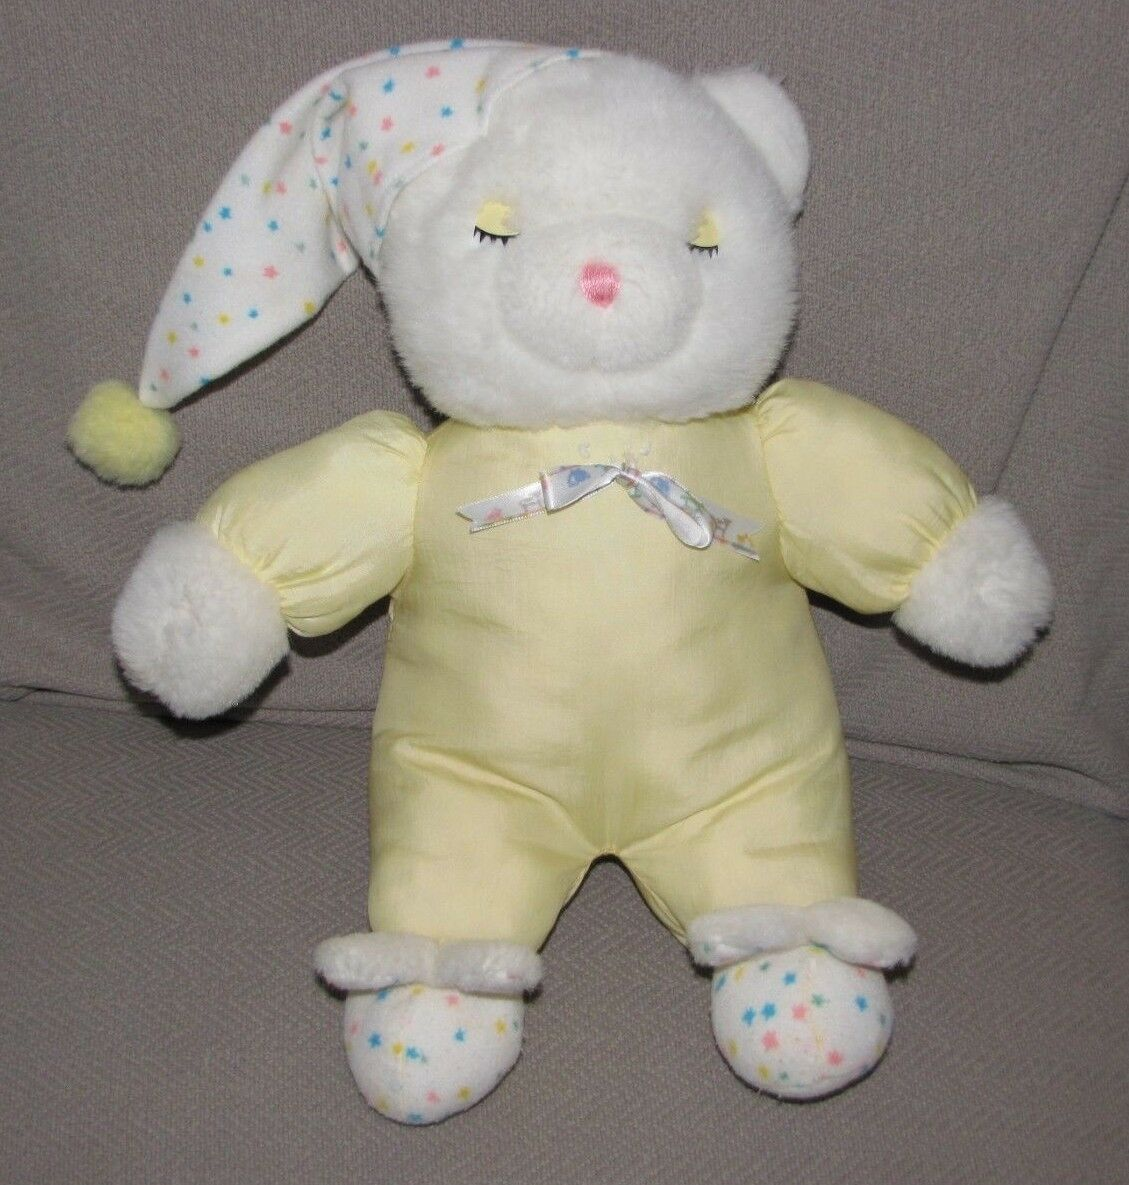 VTG STUFFED PLUSH TEDDY BEAR bianca  NYLON SLEEPY EYE NIGHT CAP HAT BUNNY SLIPPER